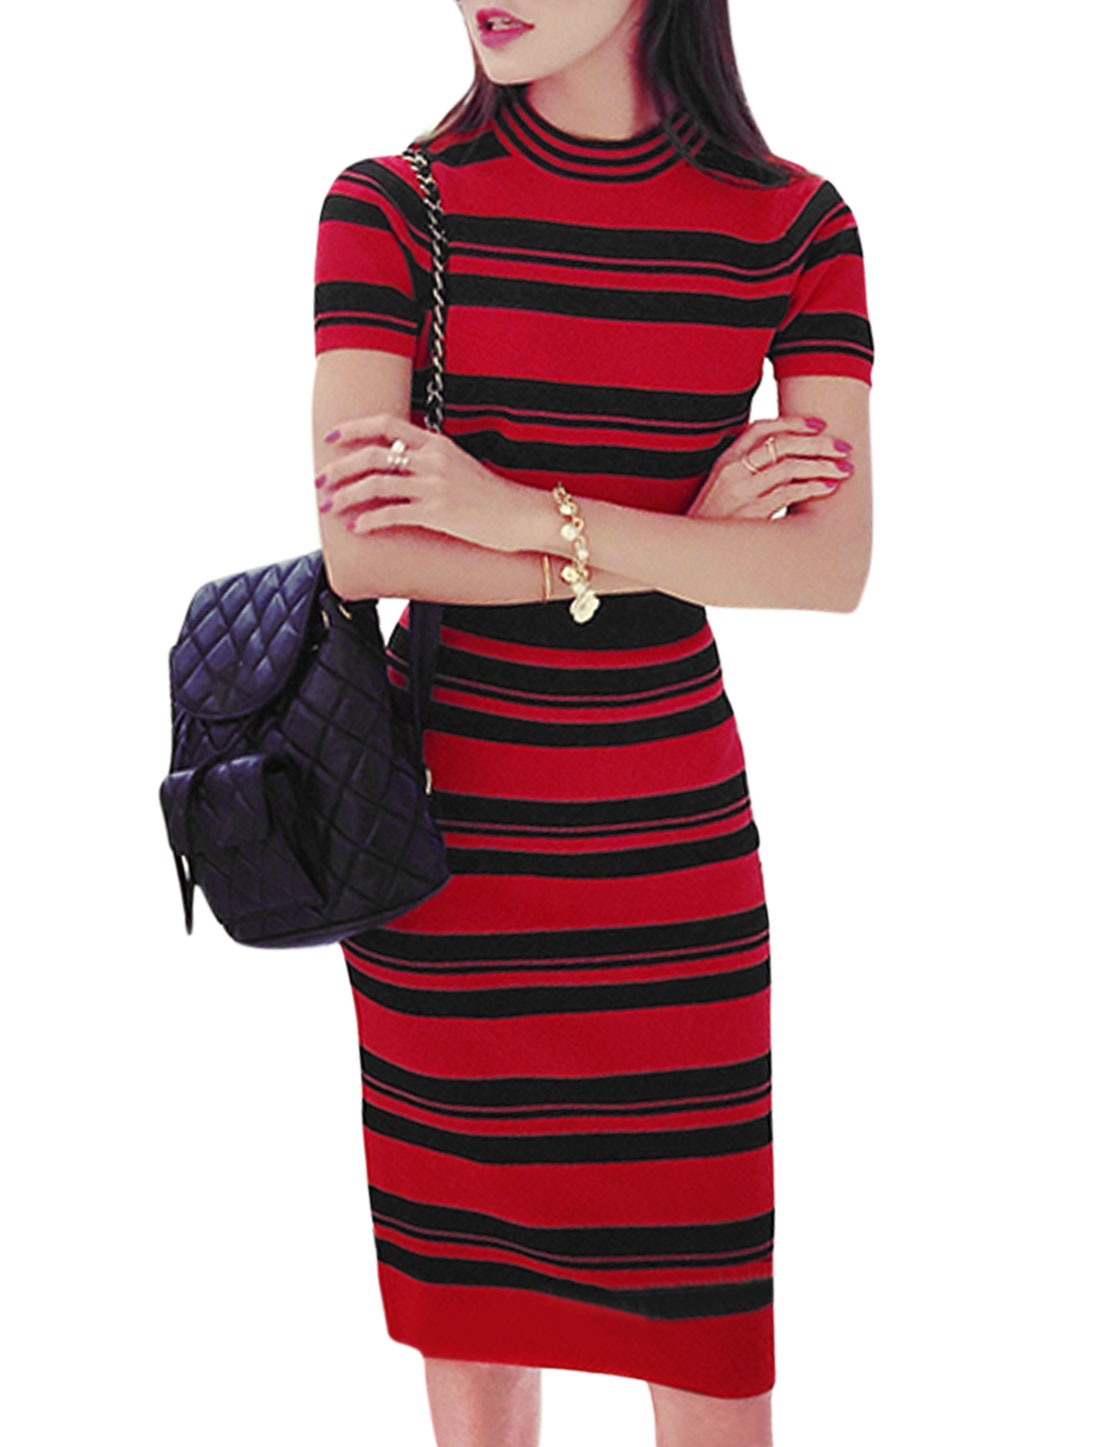 Woman Short Sleeves Knit Crop Top w Knitted Stripes Bodycon Skirt Sets Red XS